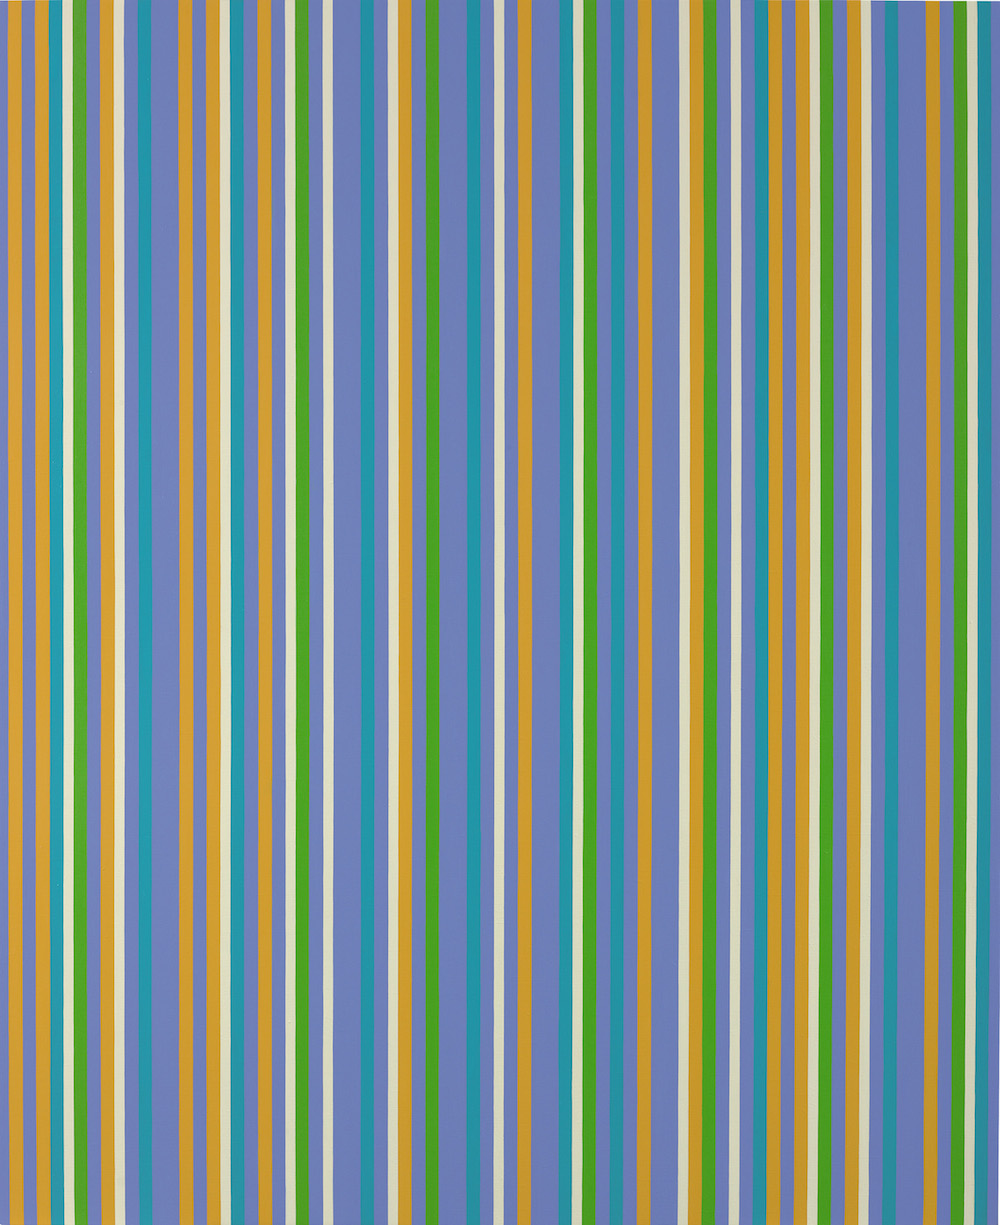 Bridget Riley, Lilac Painting 5, 2008/1983, oil on linen 67 1/2 x 55 1/4 inches,